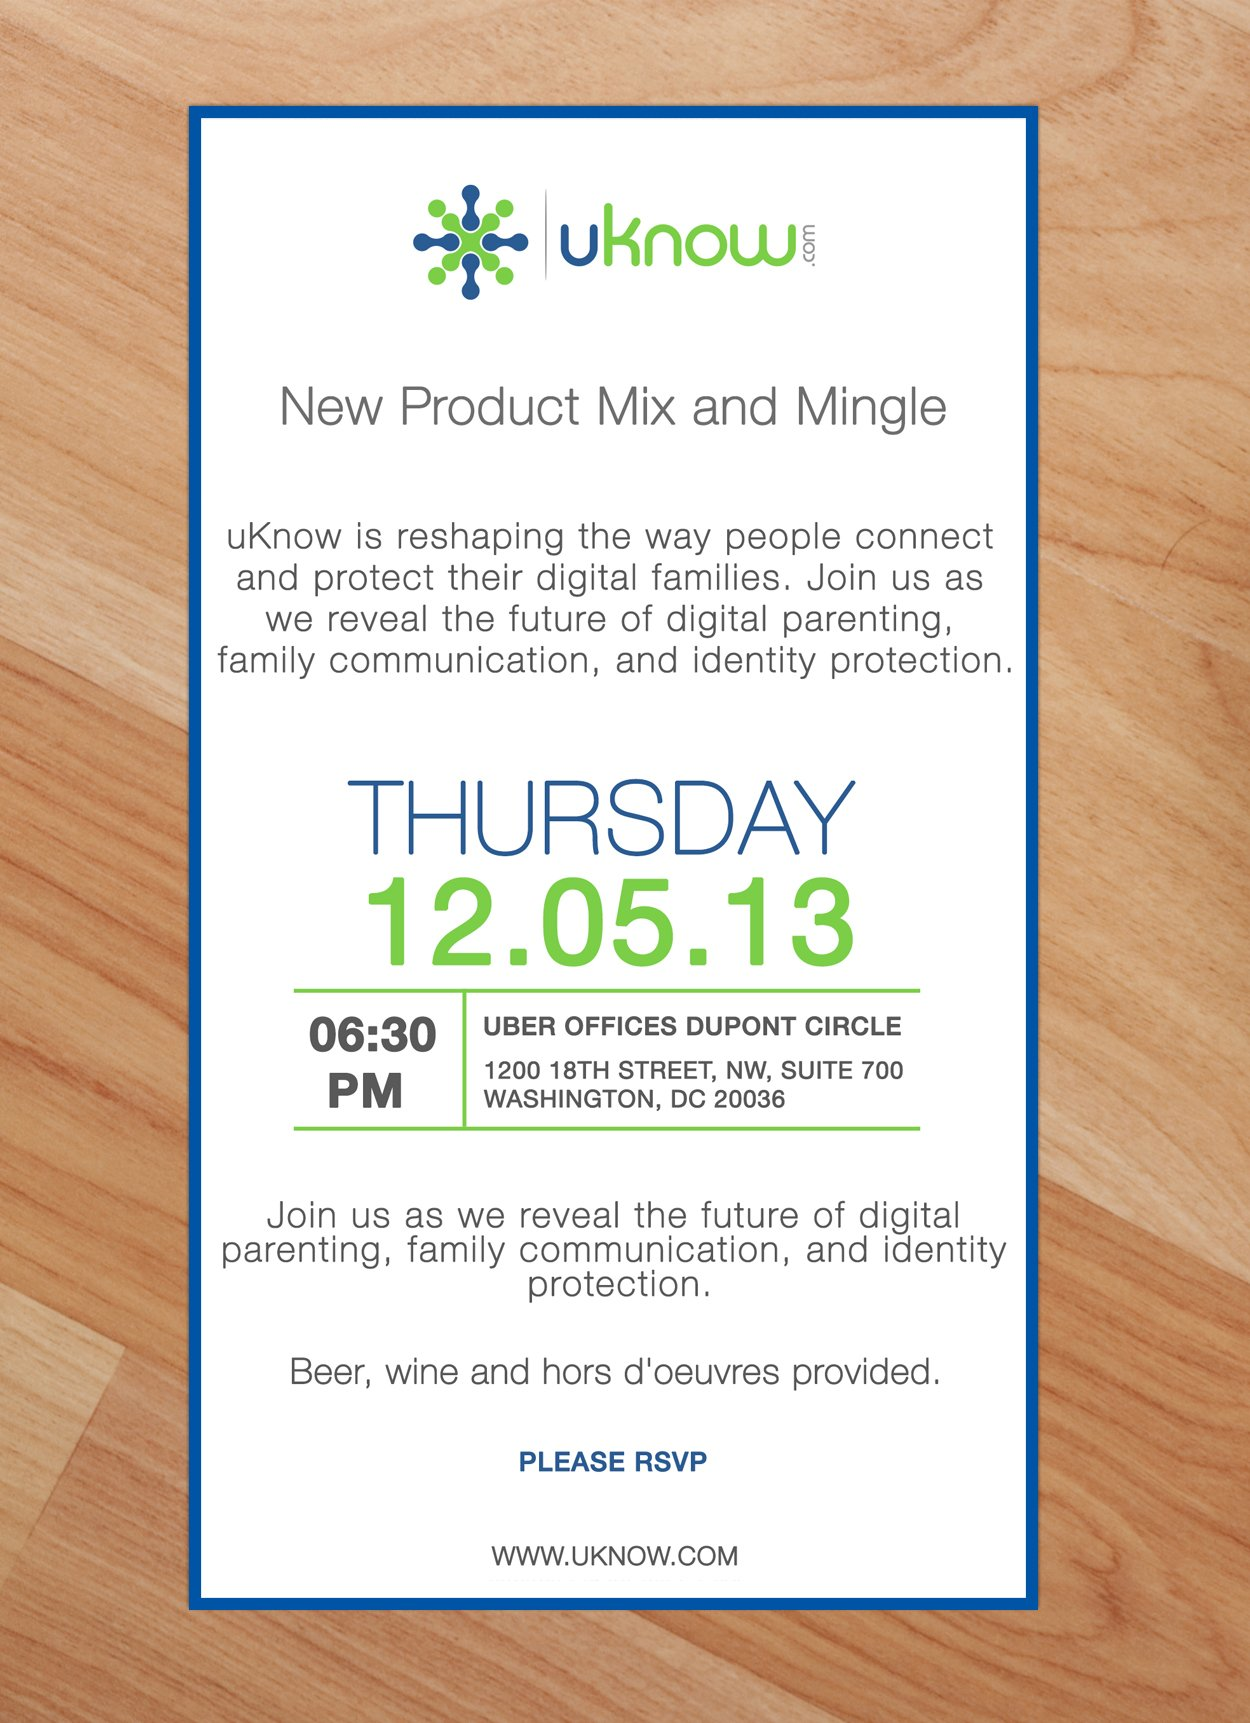 you are invited to uknow u0026 39 s new product mix and mingle event